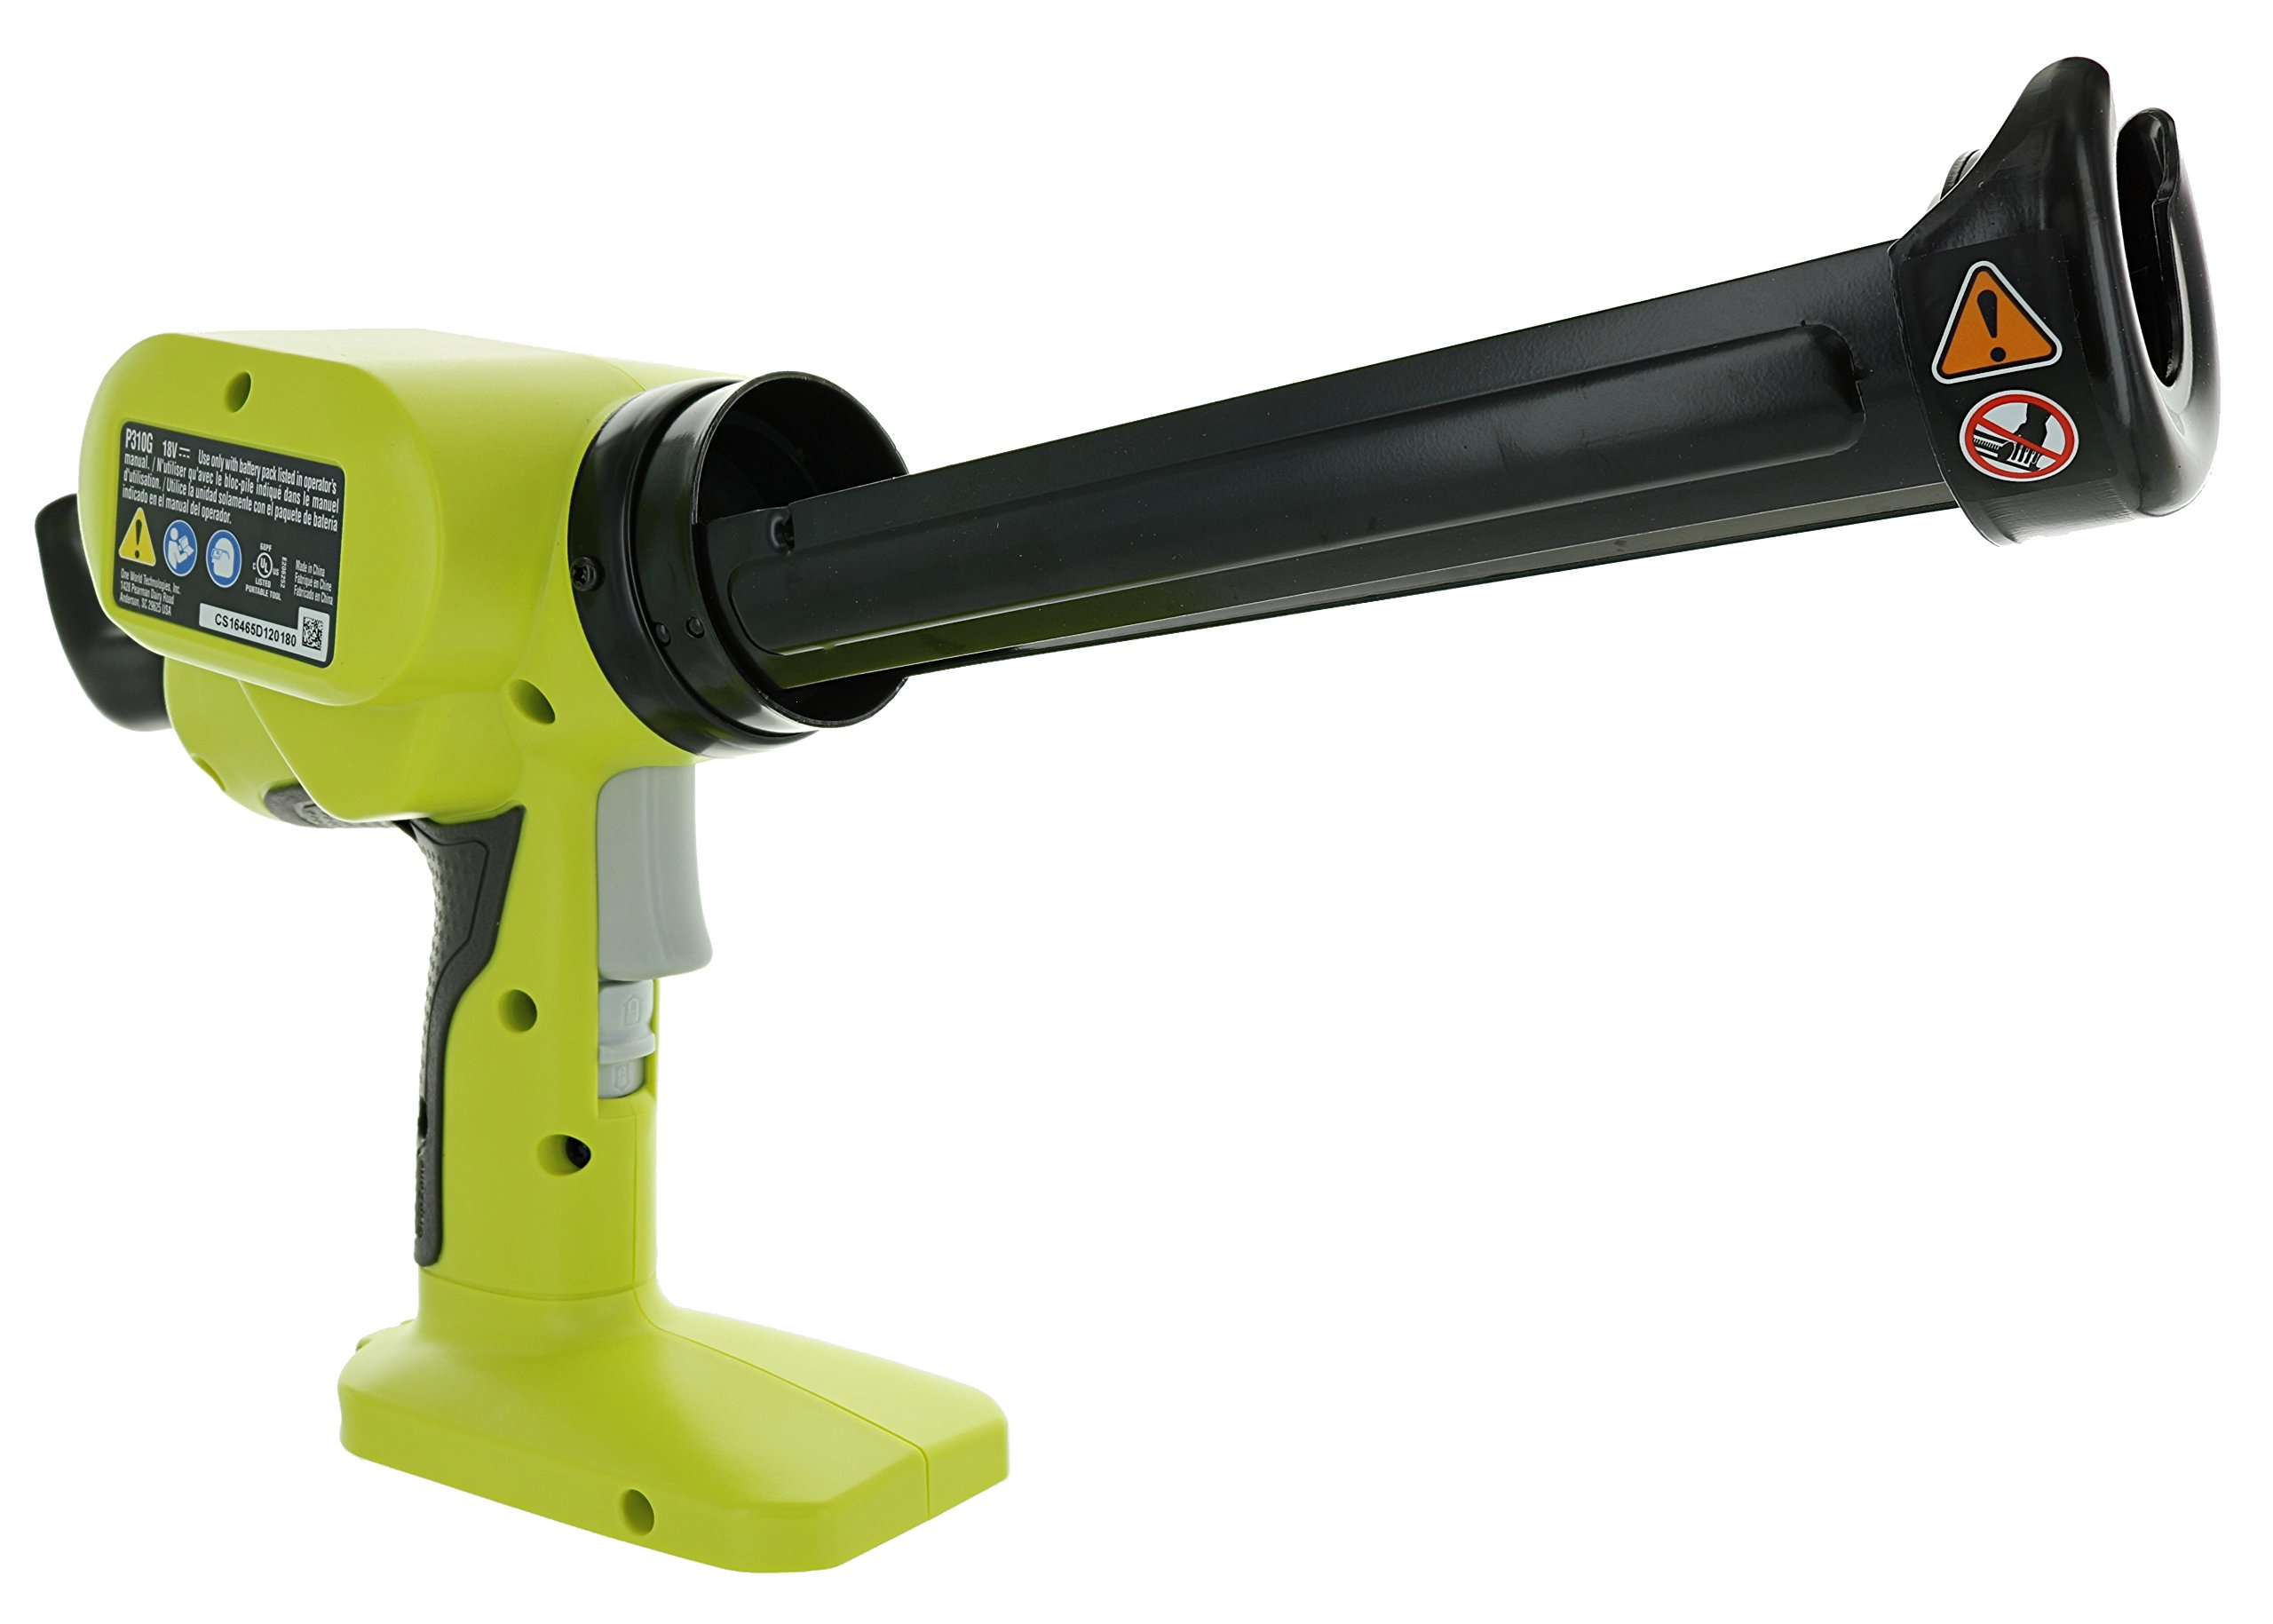 Ryobi P310G 18v Pistol Grip Variable Discharge Rate Power Caulk and Adhesive Gun (Tool Only, Holds 10 Ounce Carriage) by Ryobi (Image #3)